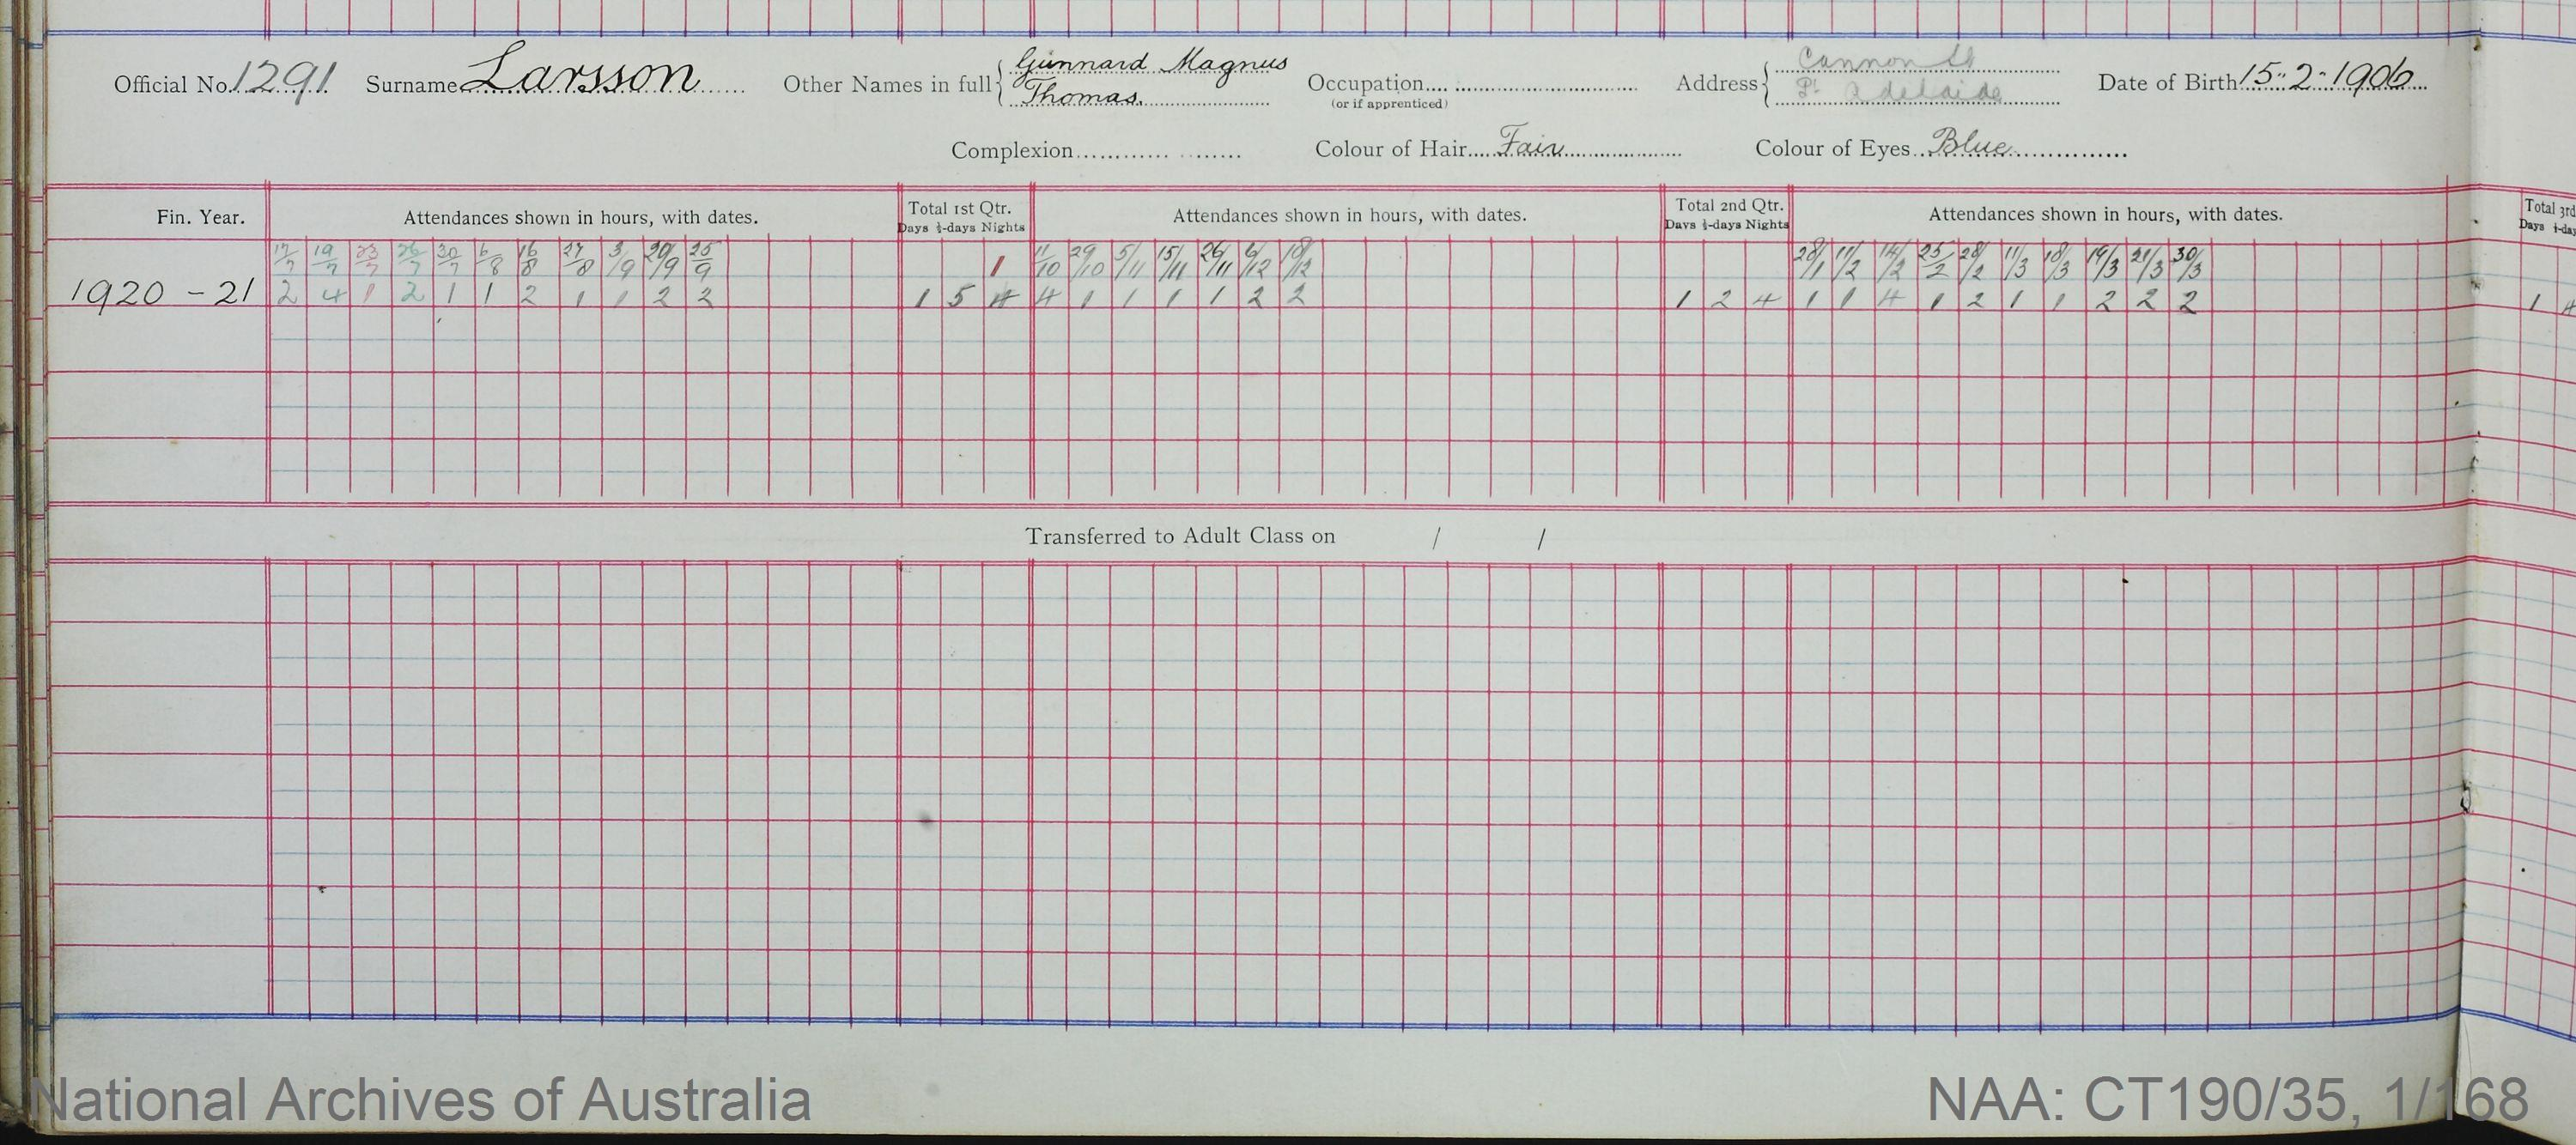 SURNAME - LARSSON;  GIVEN NAME(S) - Gunnard Magnus Thomas;  OFFICIAL NUMBER - 1291;  DATE OF BIRTH - 15 February 1906;  PLACE OF BIRTH - [Unknown];  NEXT OF KIN - [Unknown];  SERVICE/STATION - Alberton, South Australia;  REGISTRATION DATE - 5 February 1920